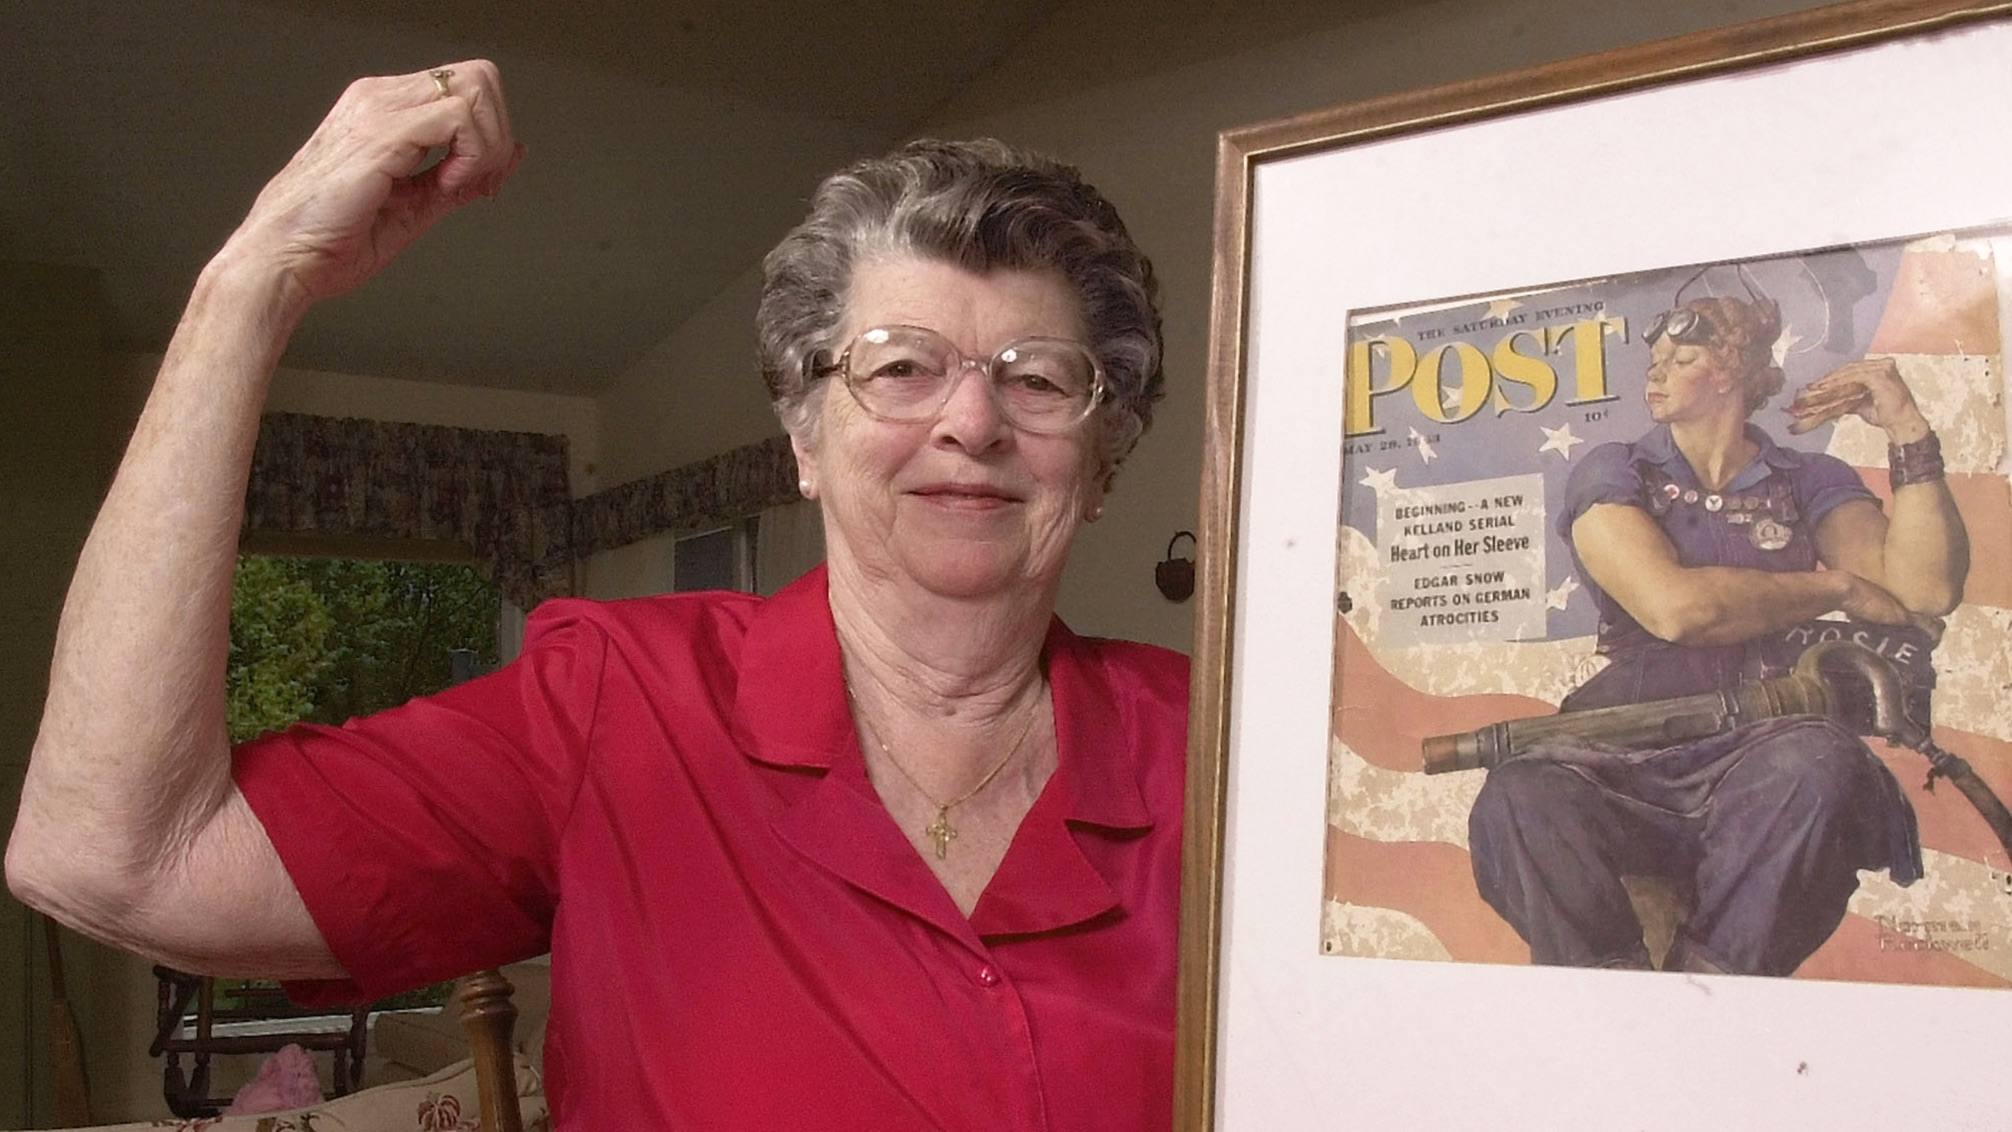 Rosie the Riveter, Mary Doyle Keefe